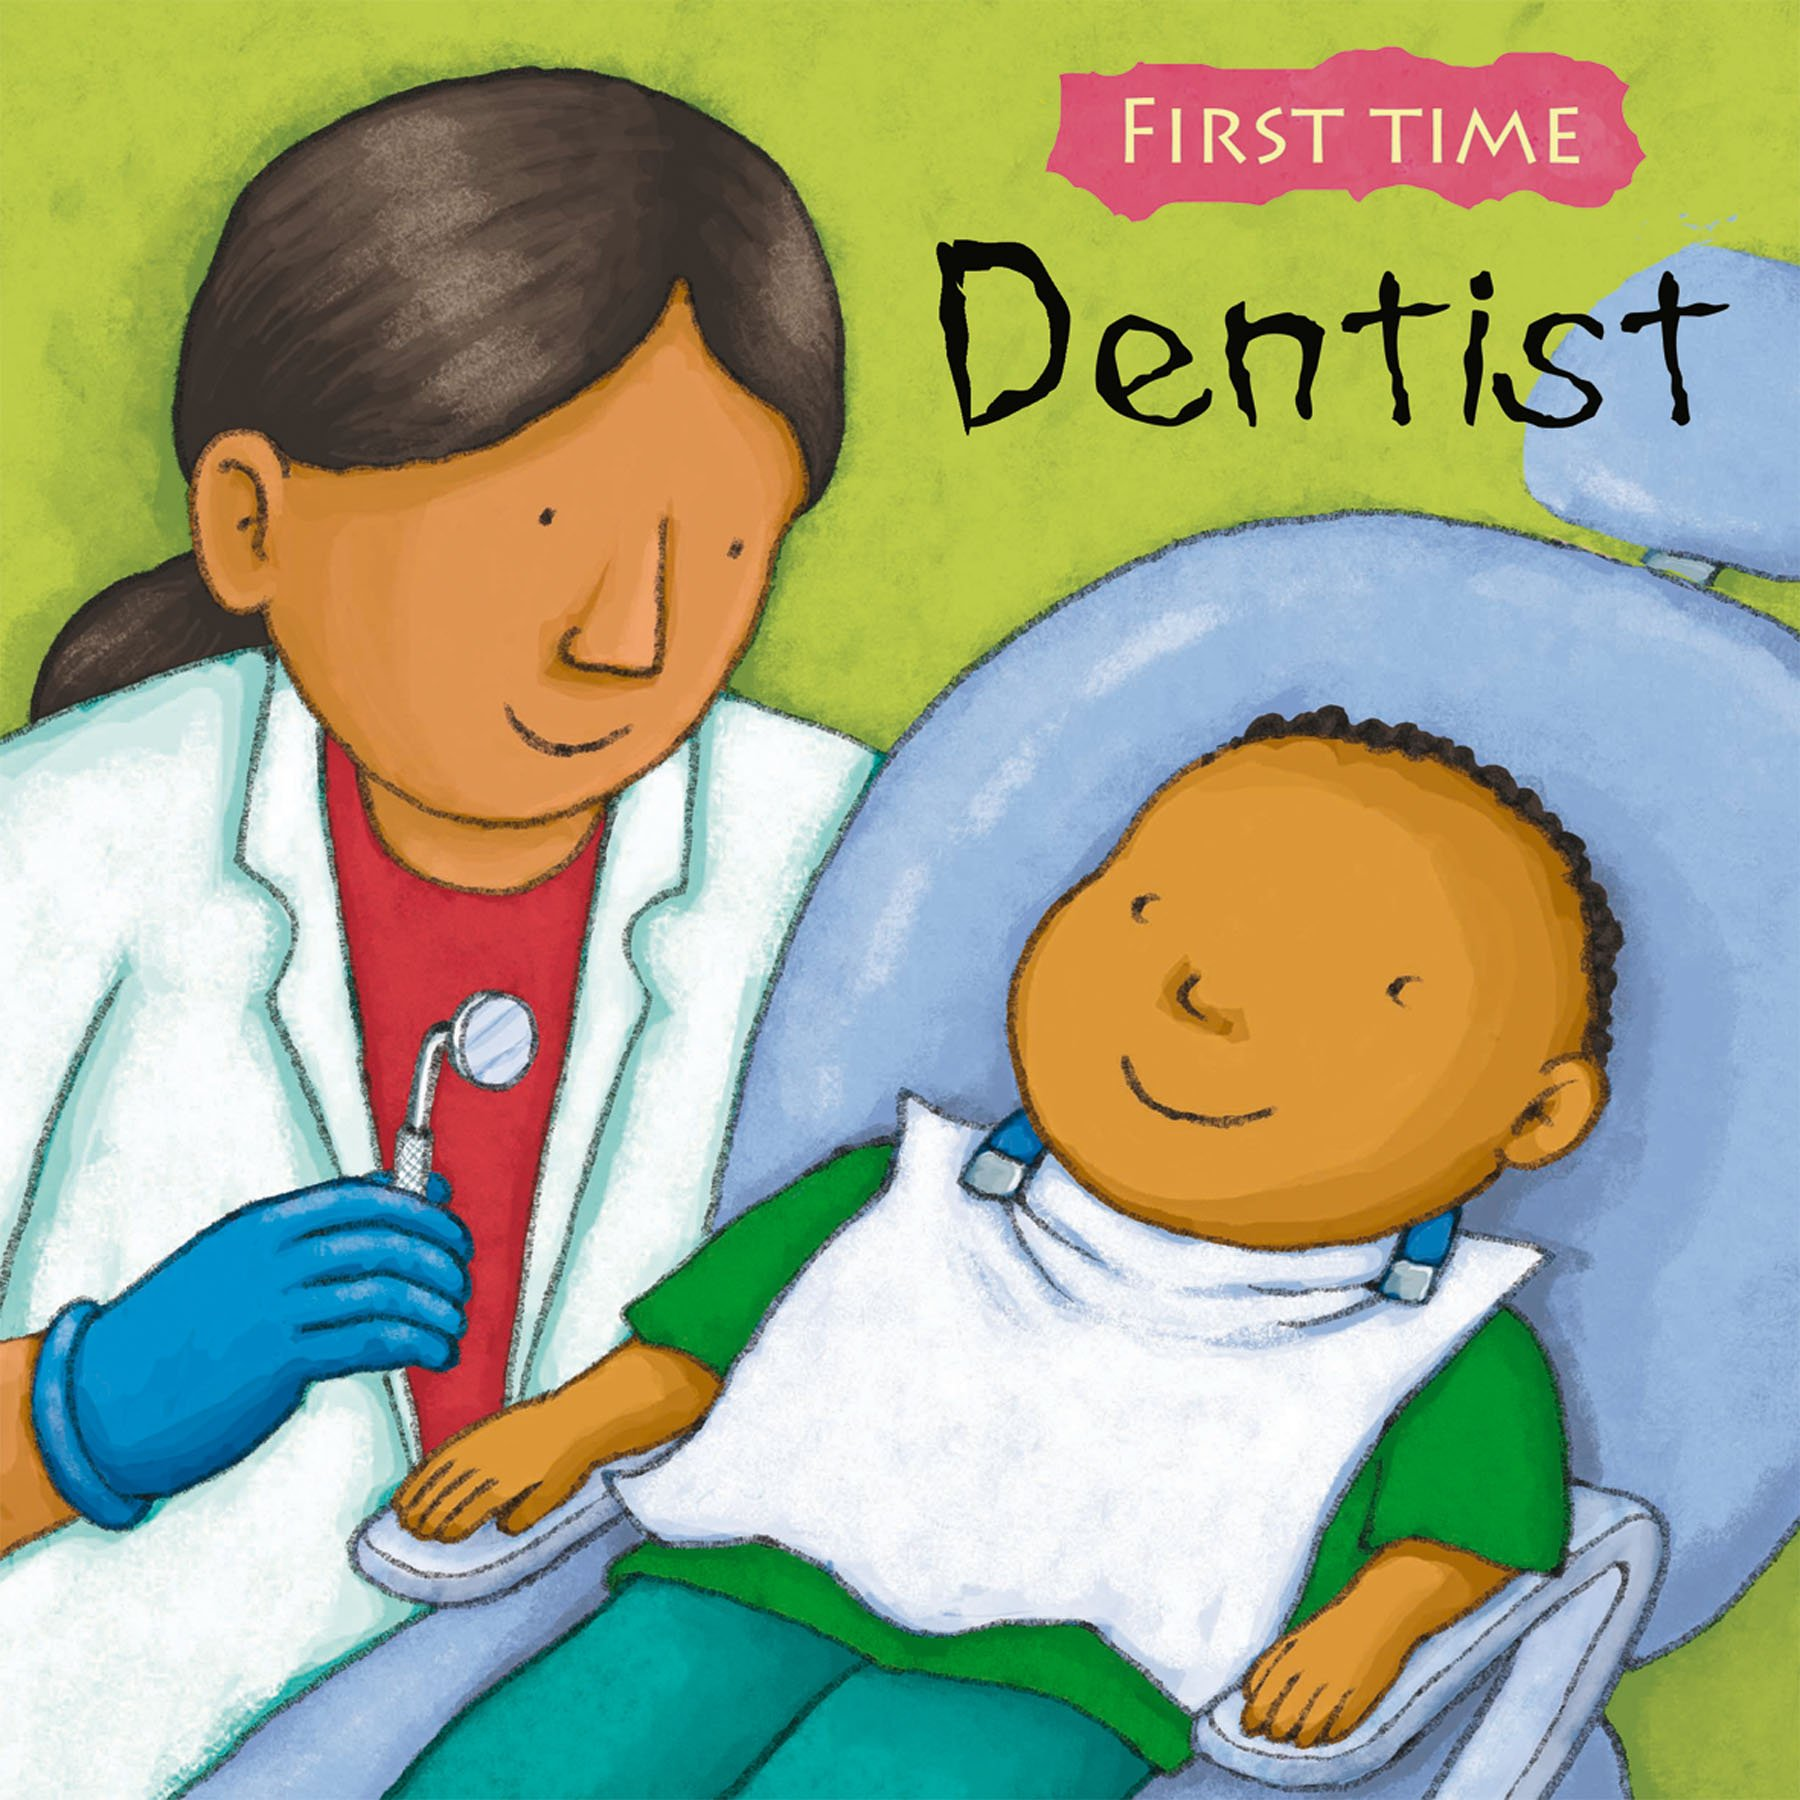 dentist first time first time childs play jess stockham